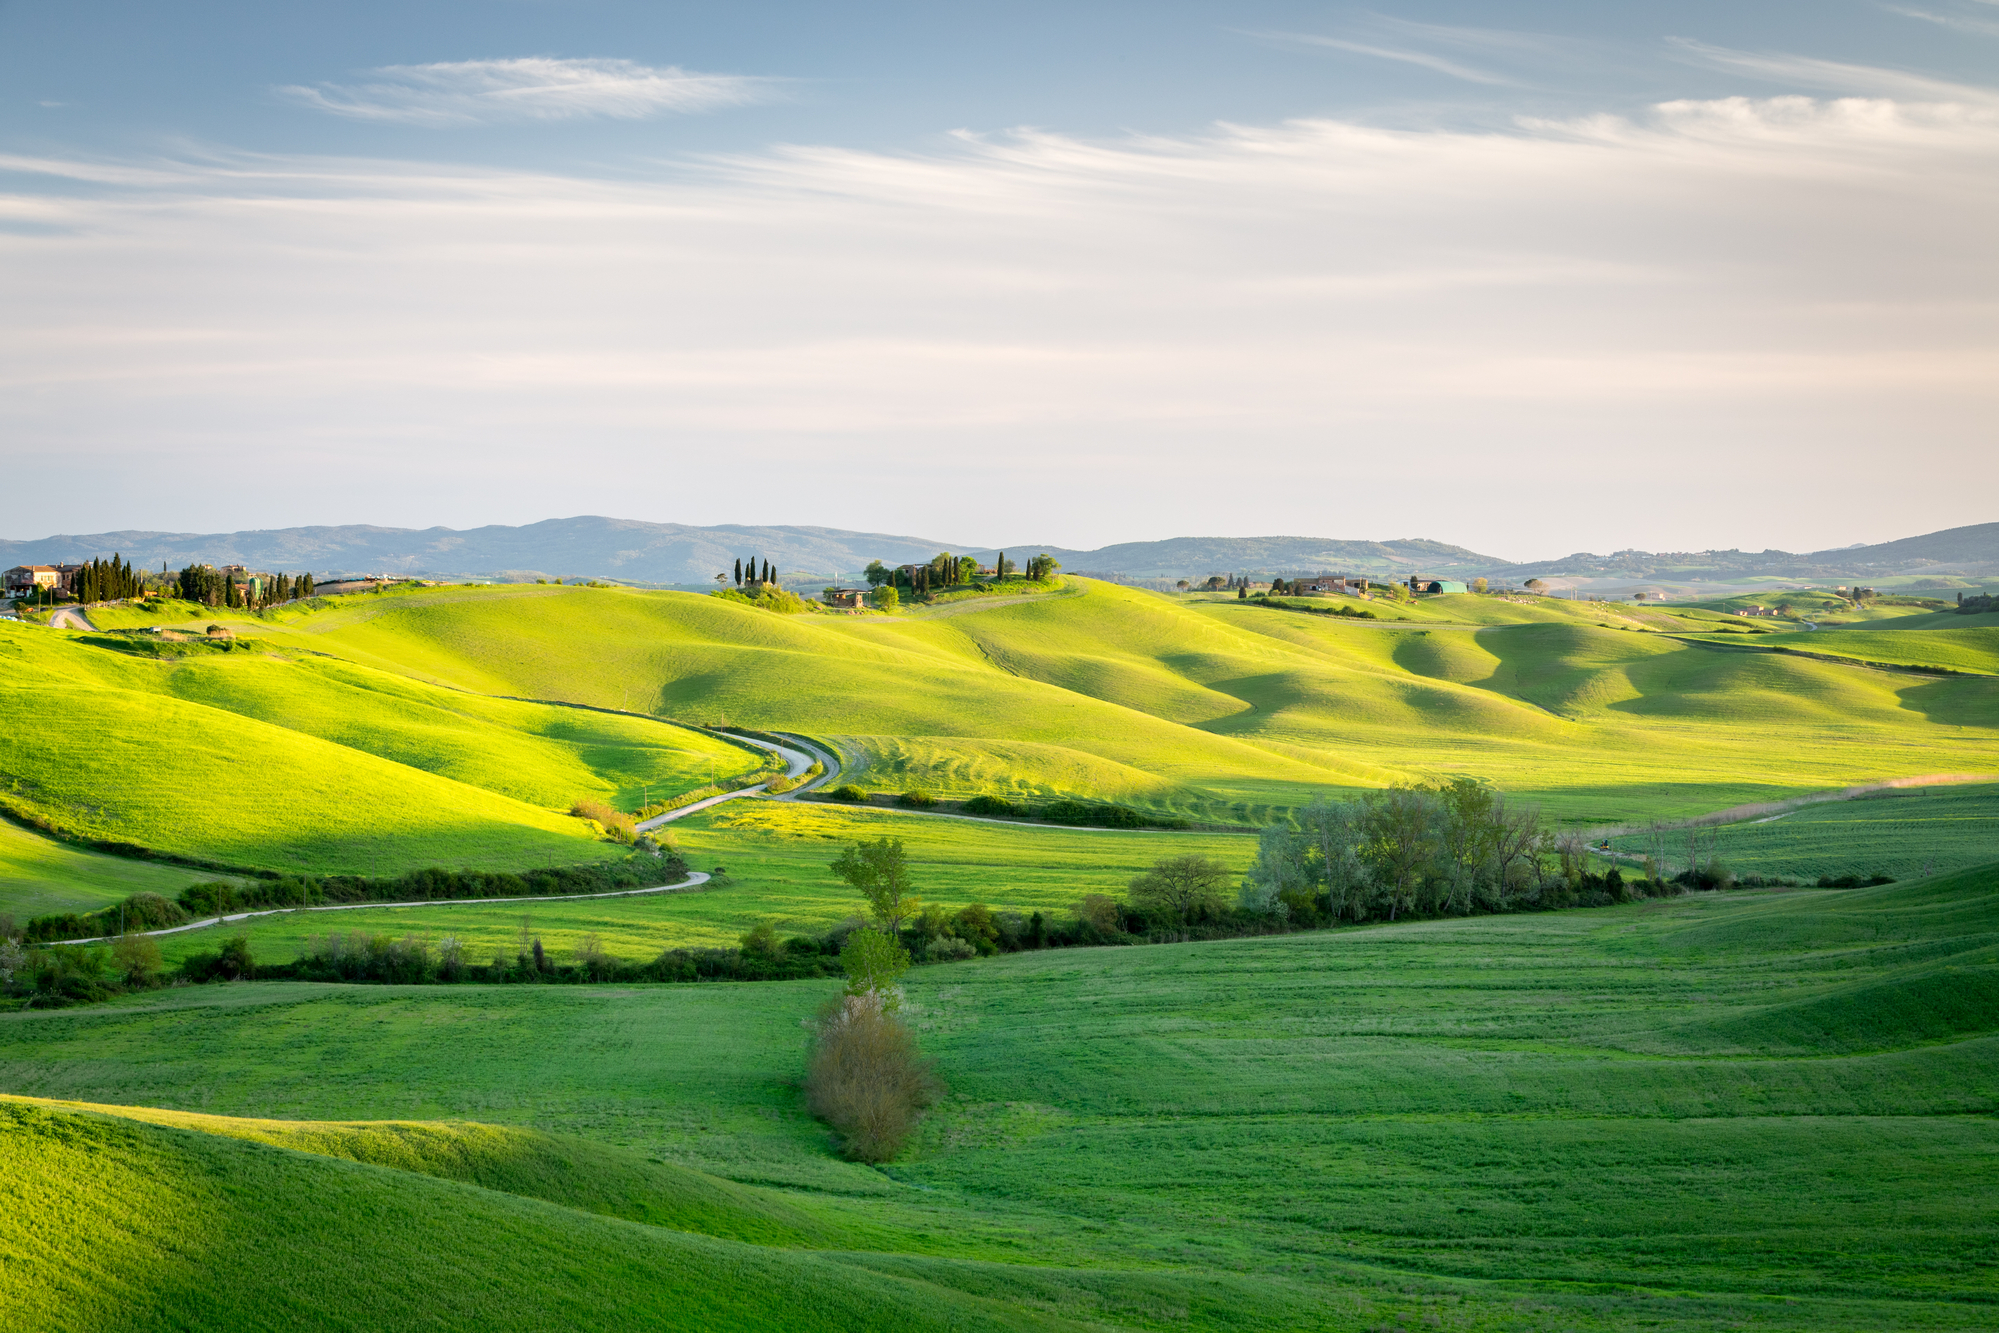 Tuscan countryside. Optimize your content for Google Discover and let users explore your content instead of searching for it.